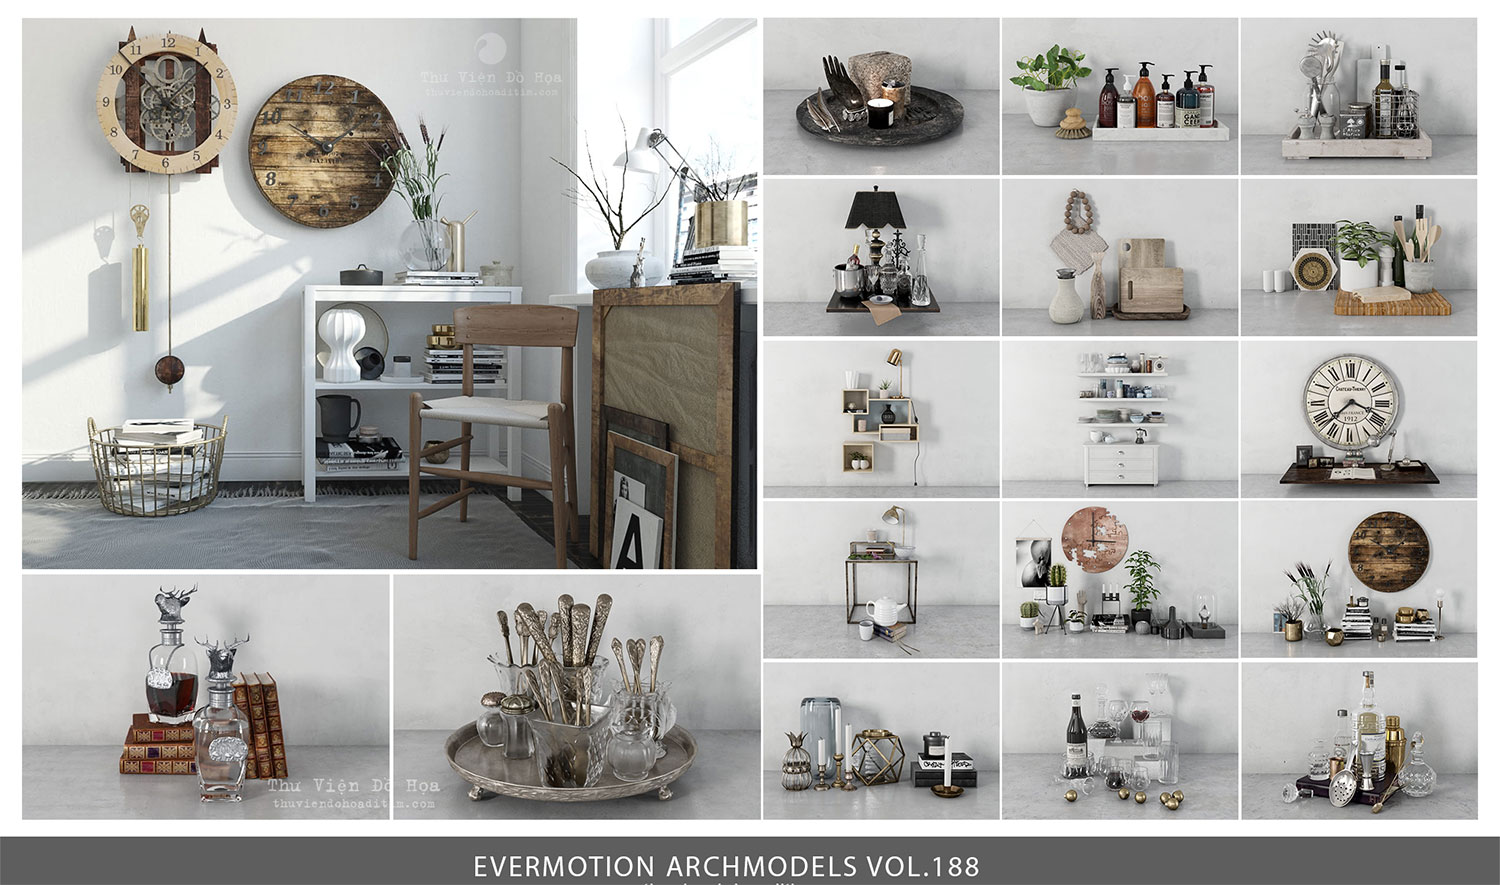 Evermotion Archmodels vol 188